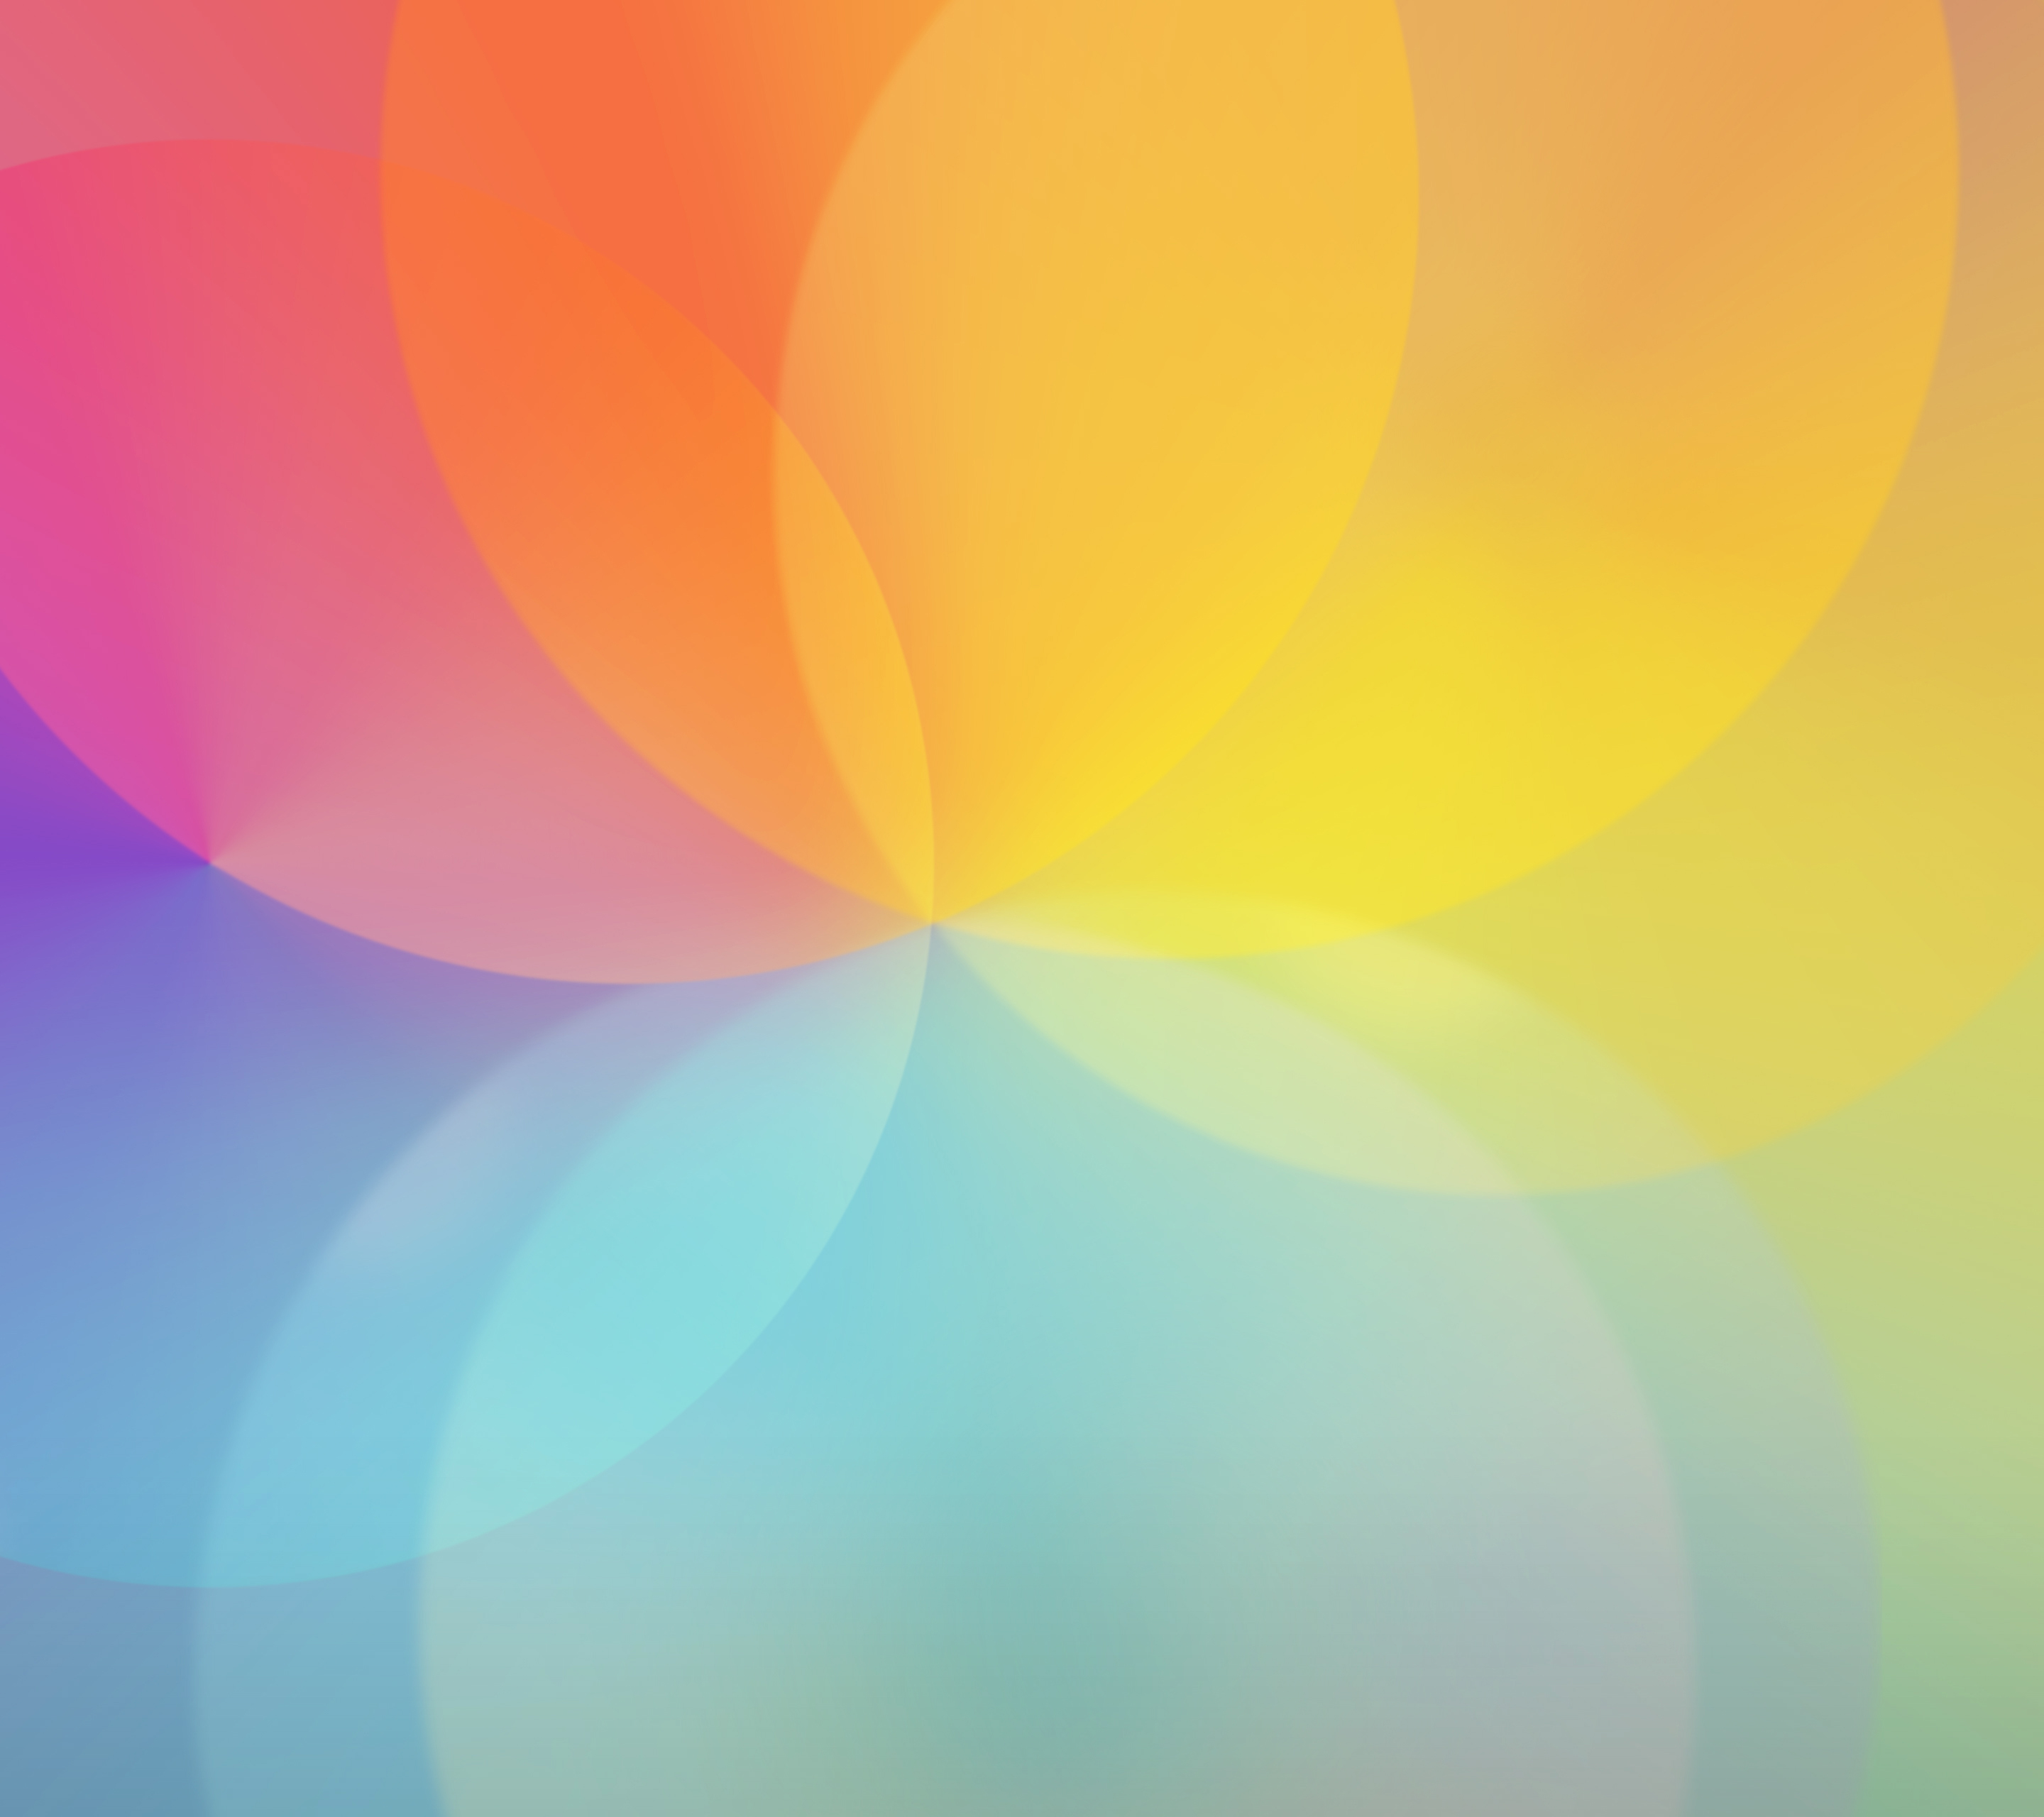 LG G3 Android Phone Wallpapers